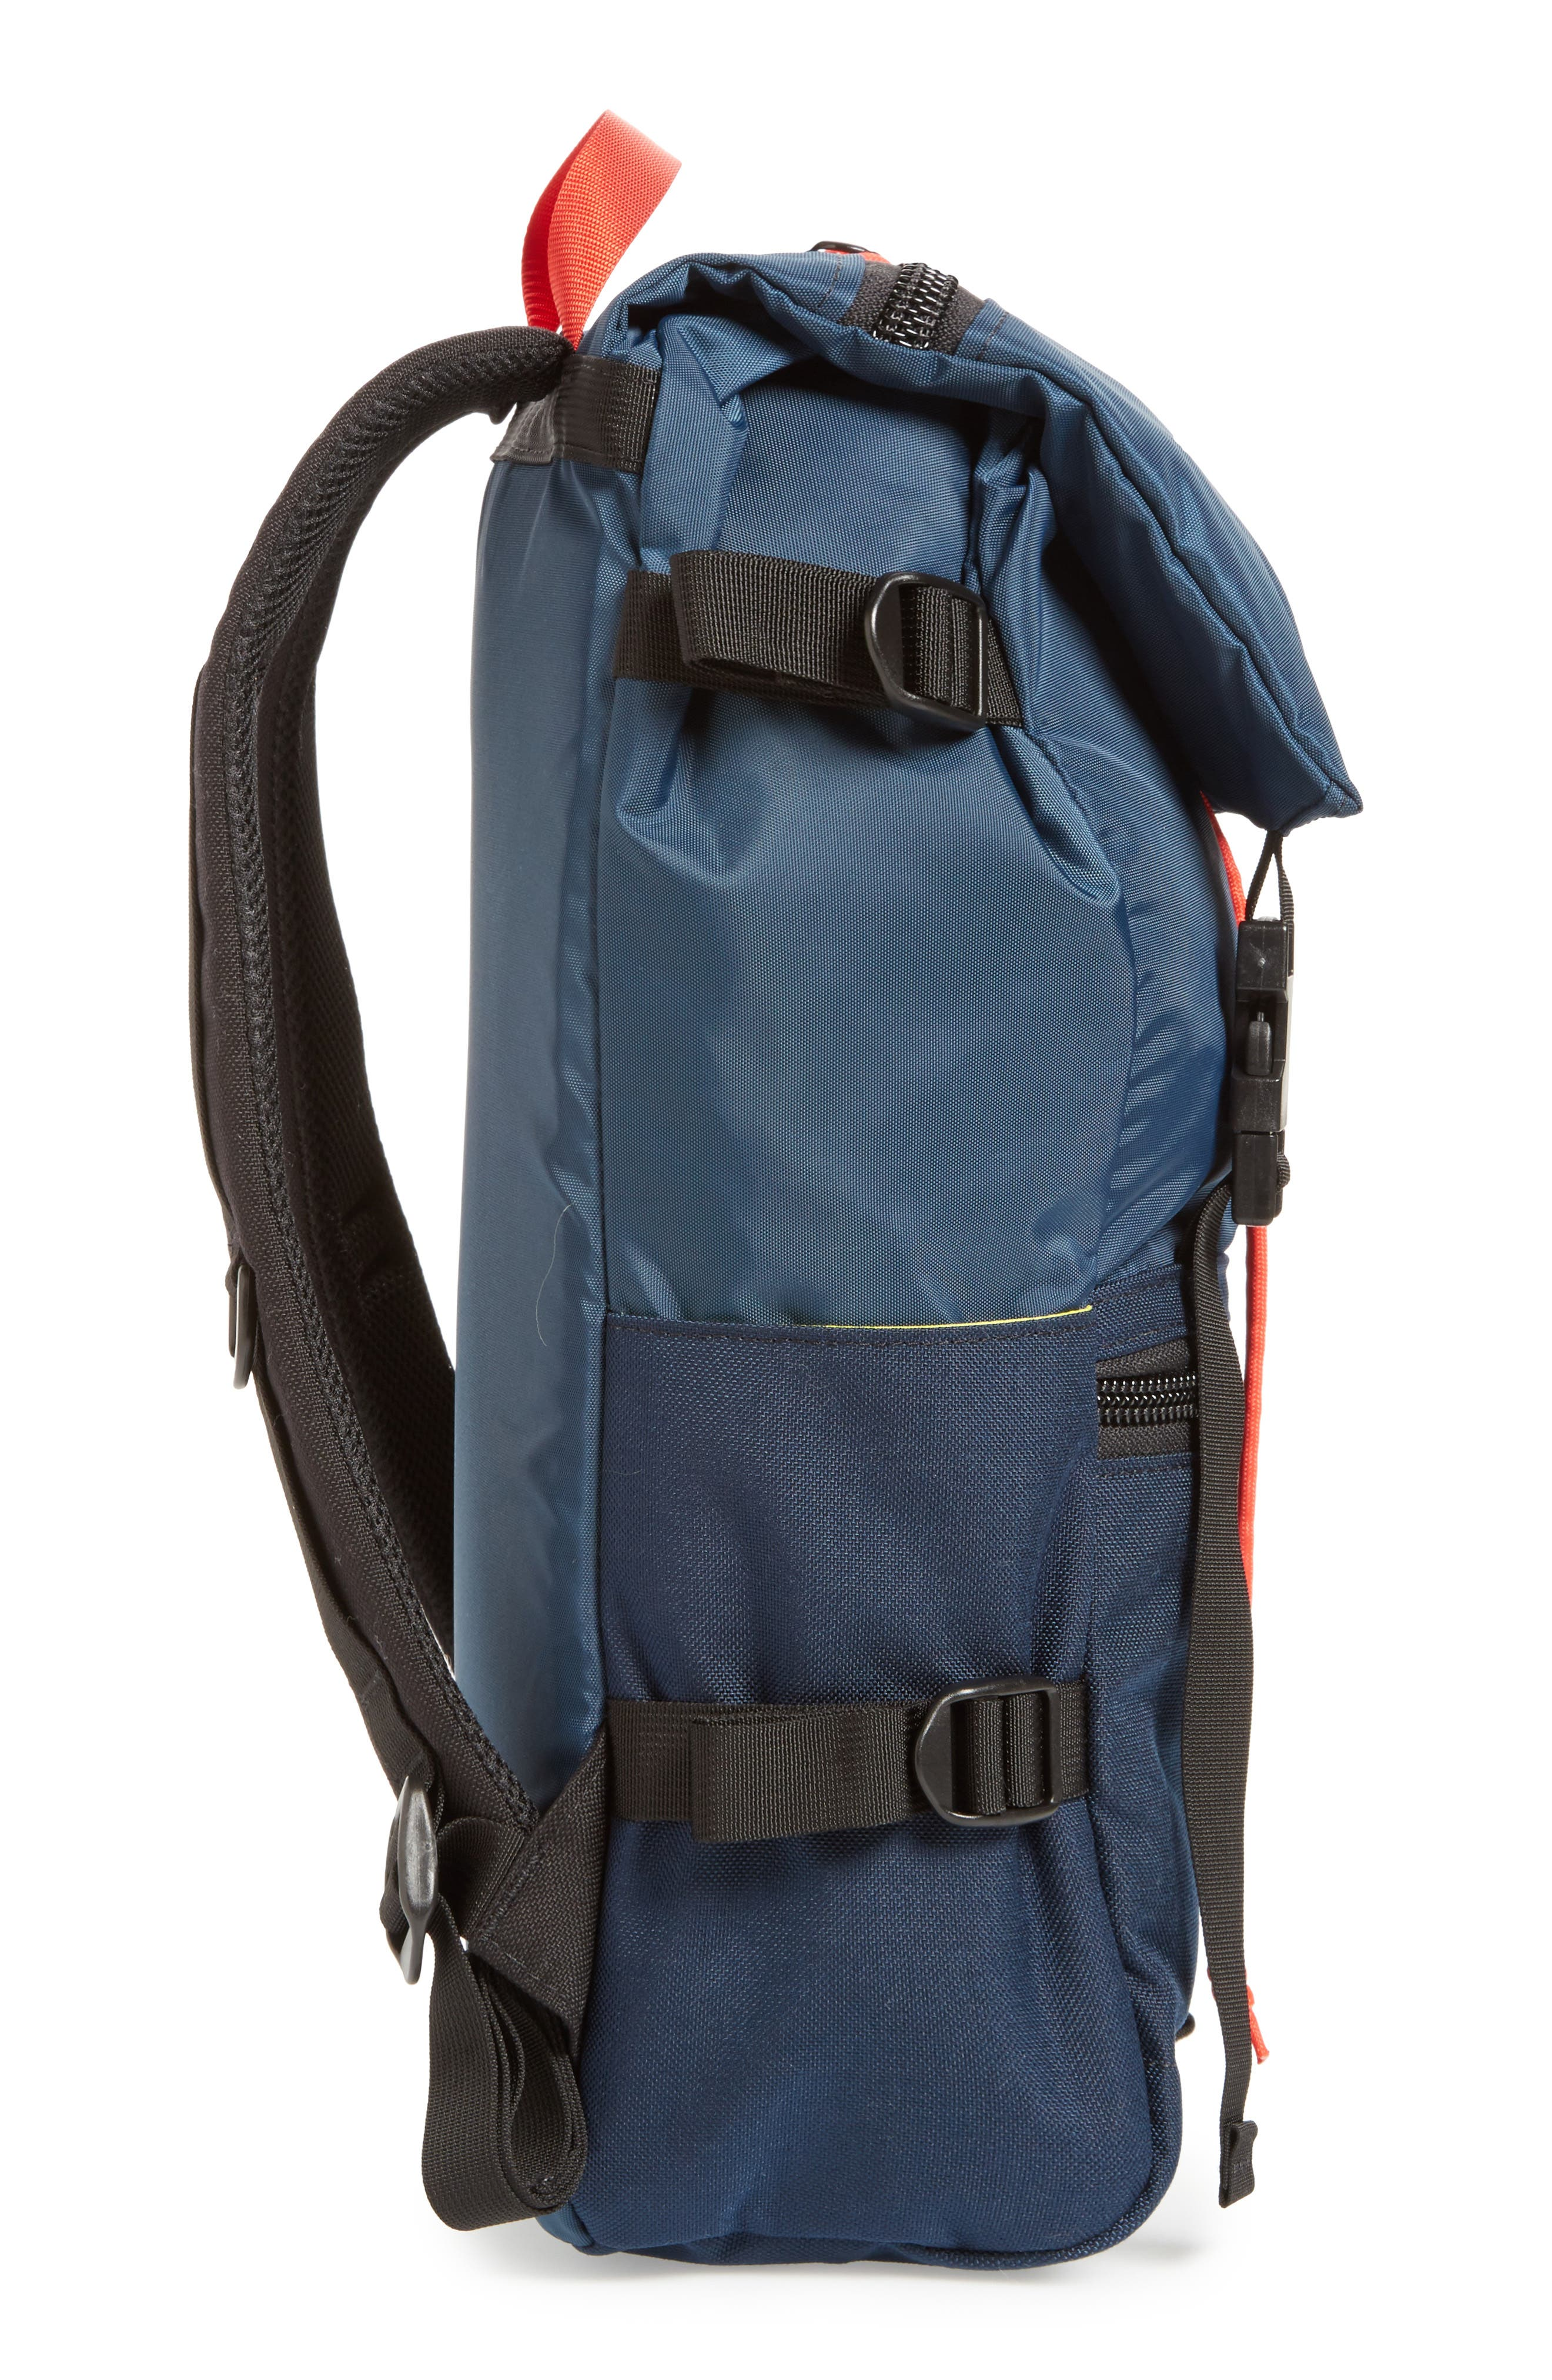 Rover Backpack,                             Alternate thumbnail 5, color,                             NAVY